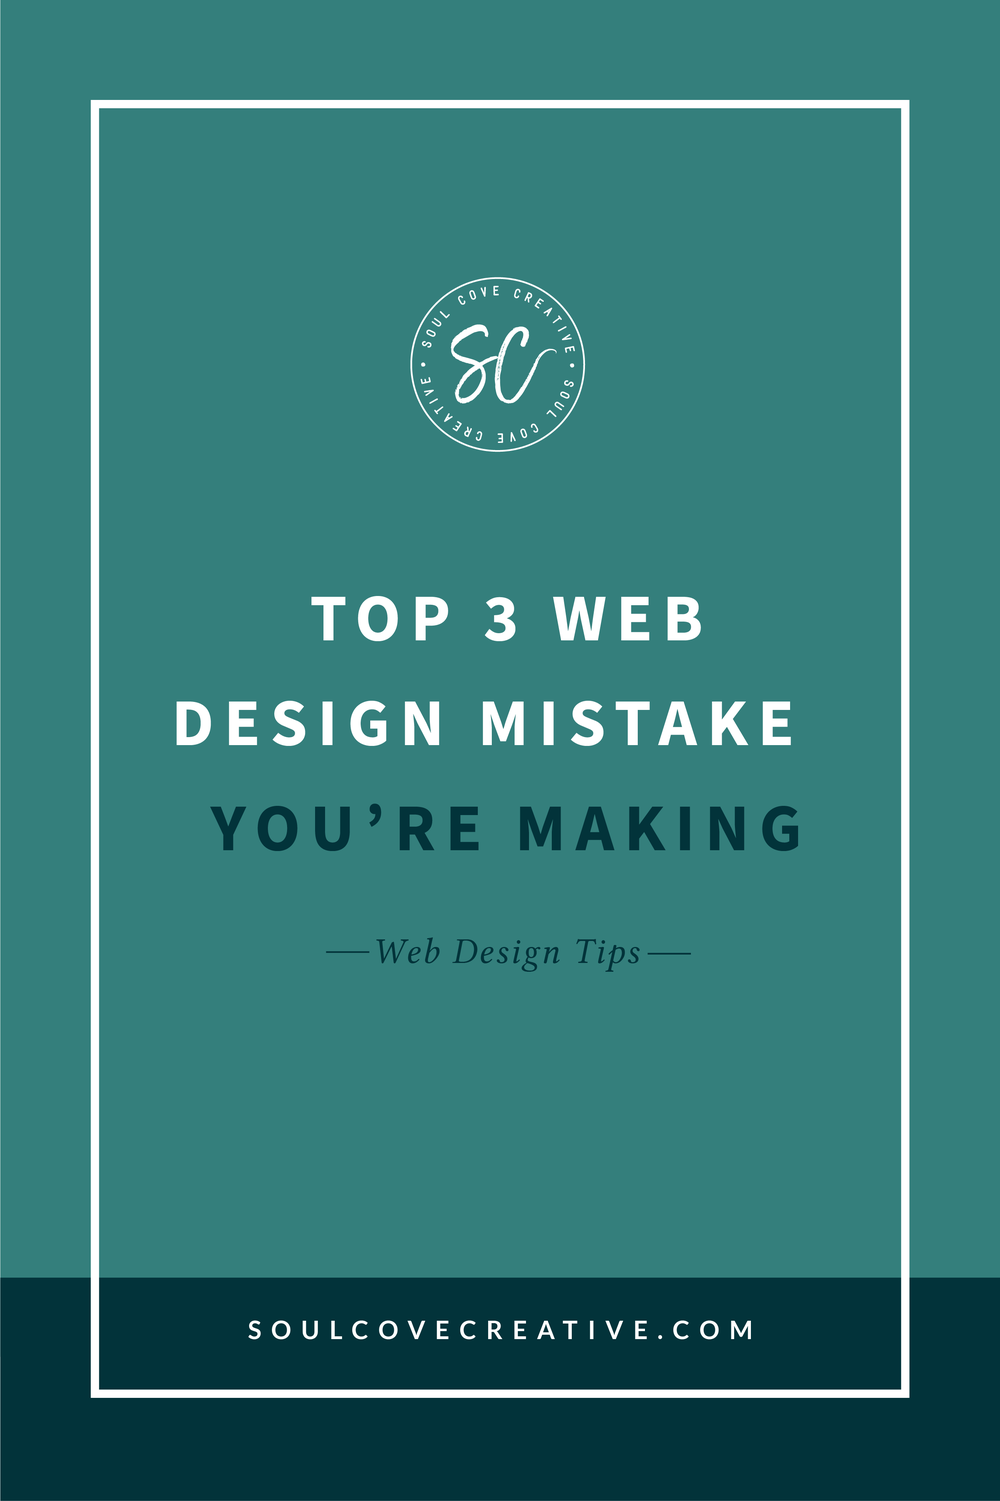 Top 3 Web Design Mistakes You're Making